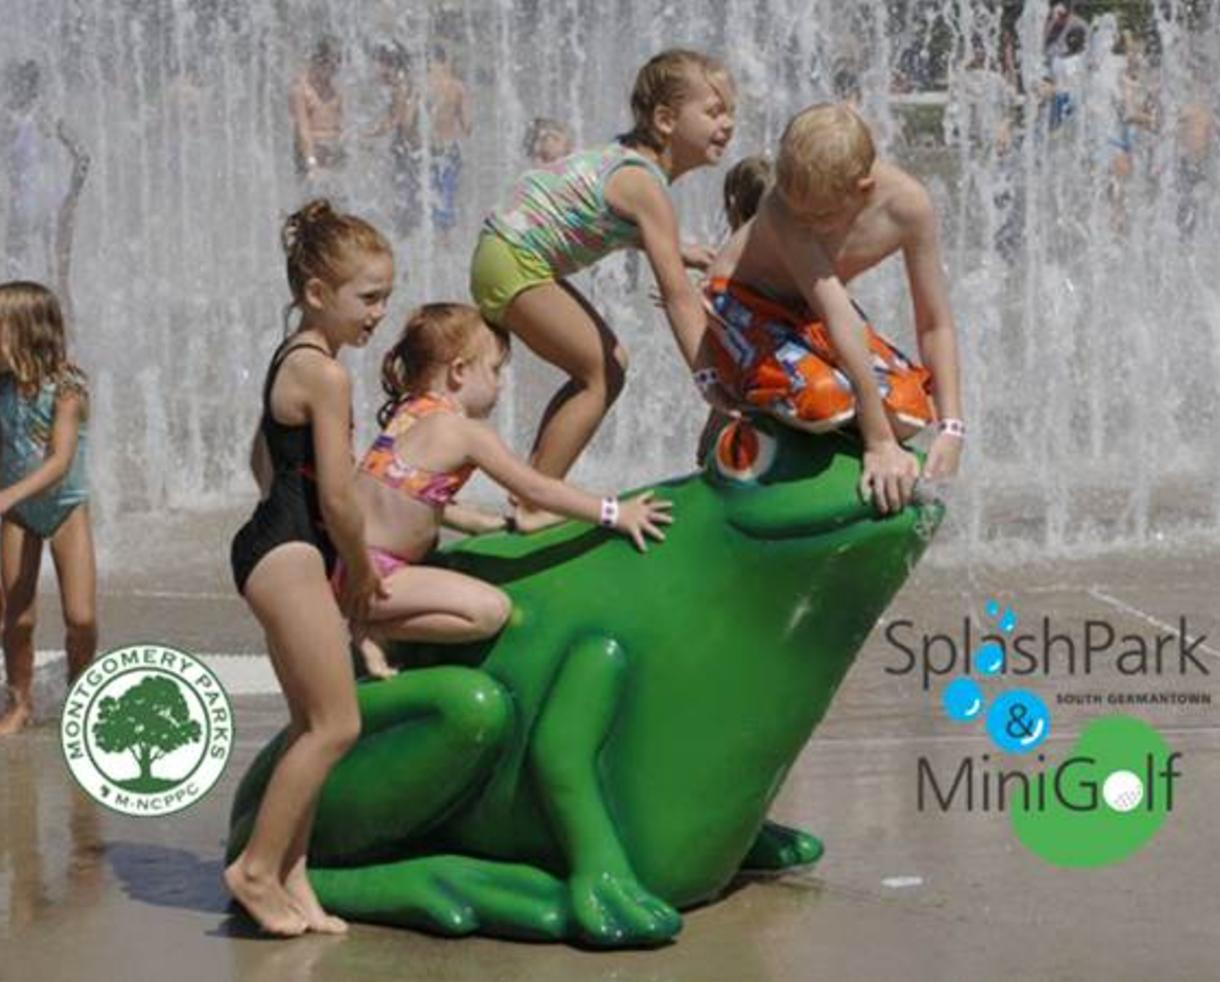 $9 for TWO Weekday SplashPark Admissions + Mini-Golf - Germantown, MD (50% Off!)